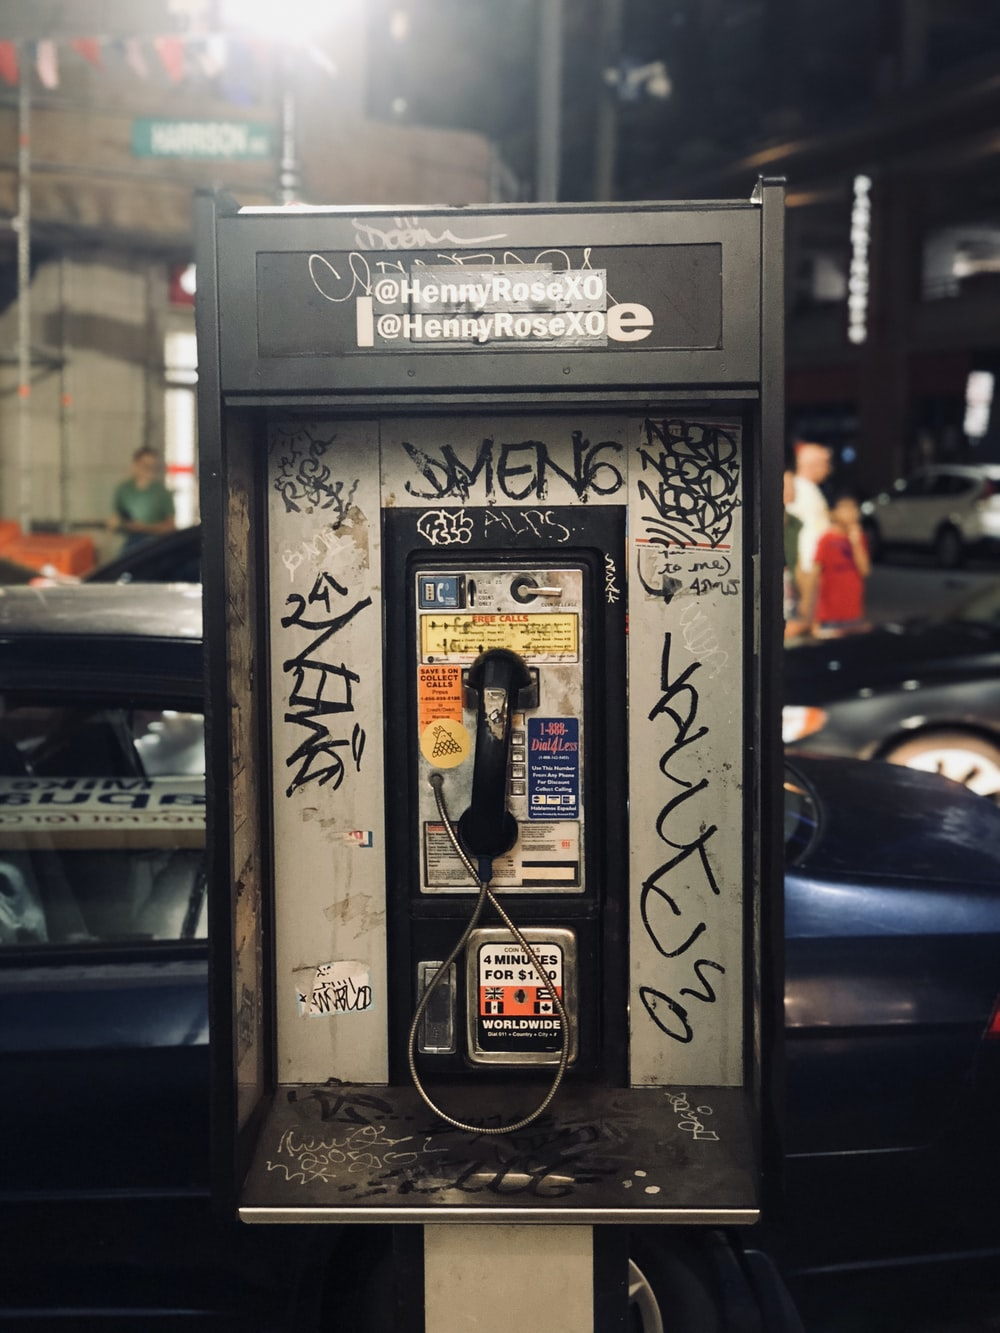 vintage rectangular black and grey telephone booth overlooking people in front of beige building